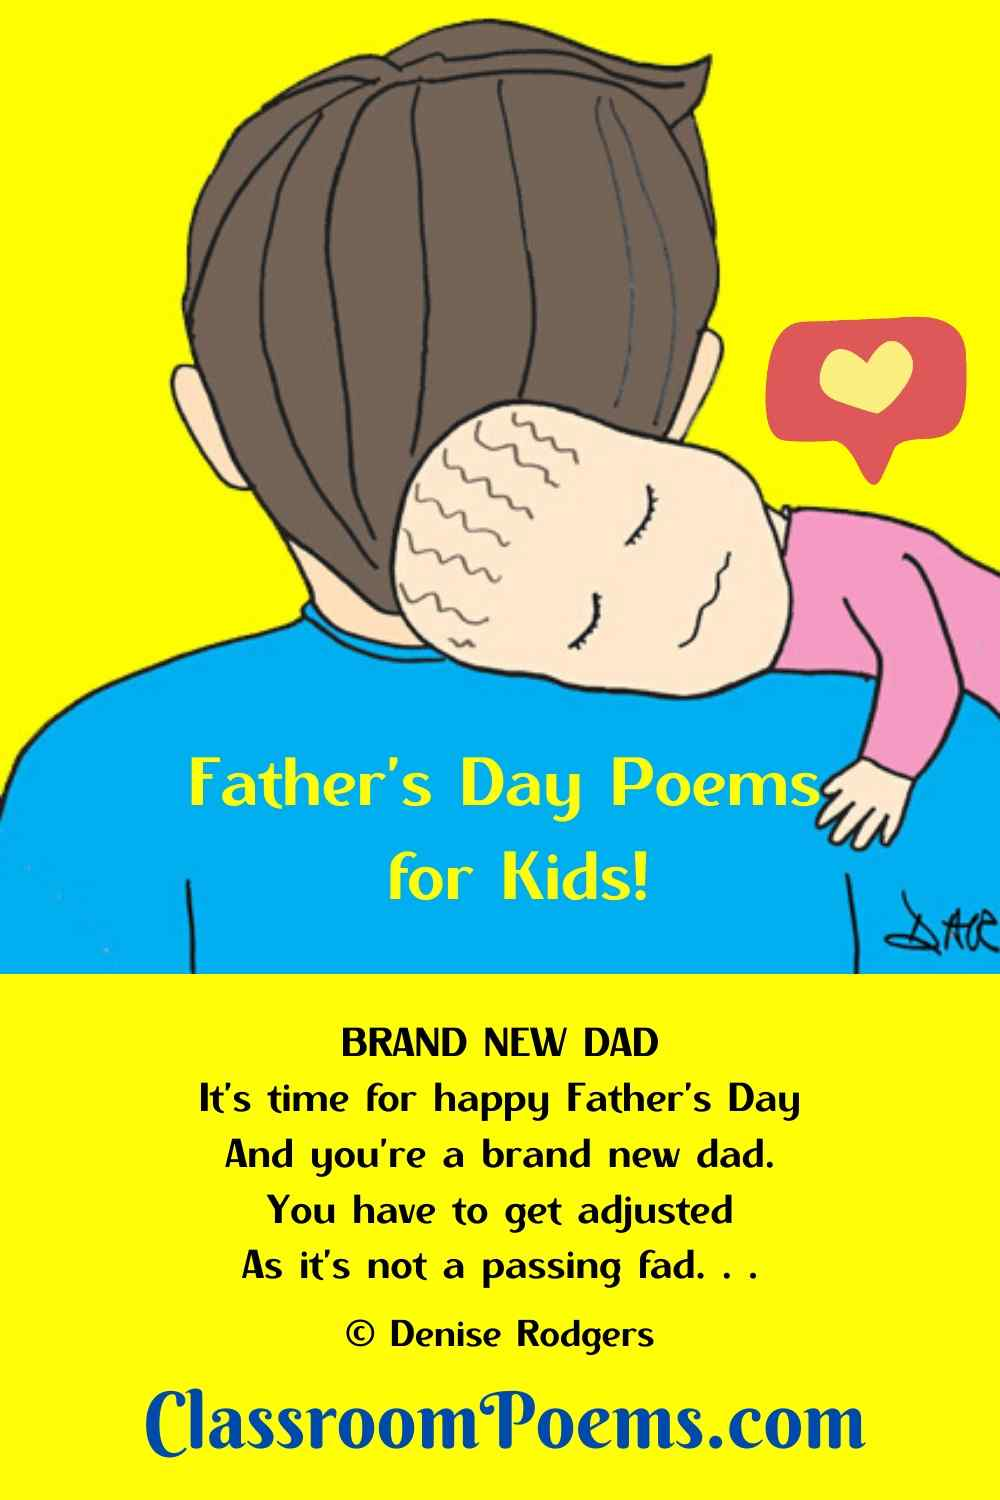 Father and newborn Father's Day poem for kids by Denise Rodgers on ClassroomPoems.com.